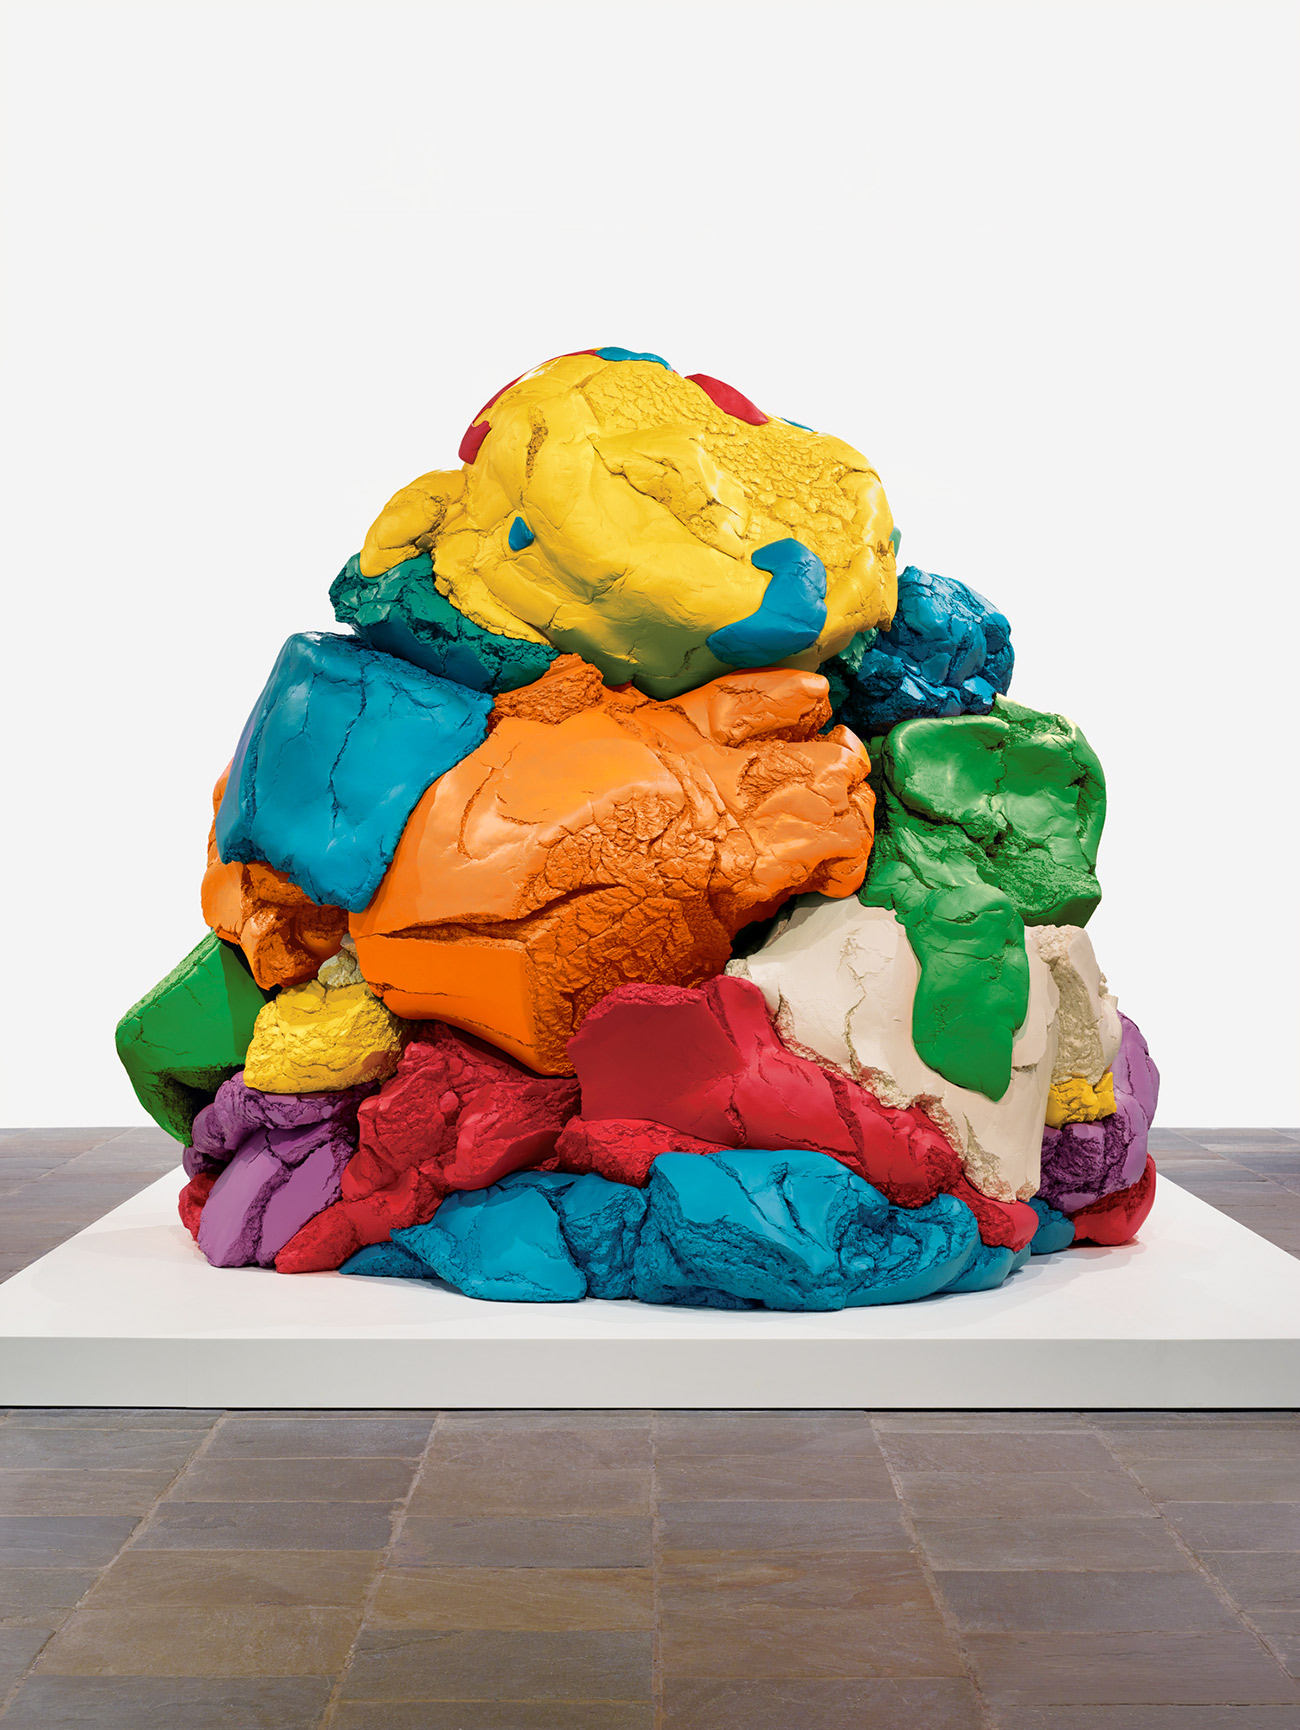 A large, colorful sculpture is crafted to exactly resemble a heap of children's play-doh, but at a massive scale